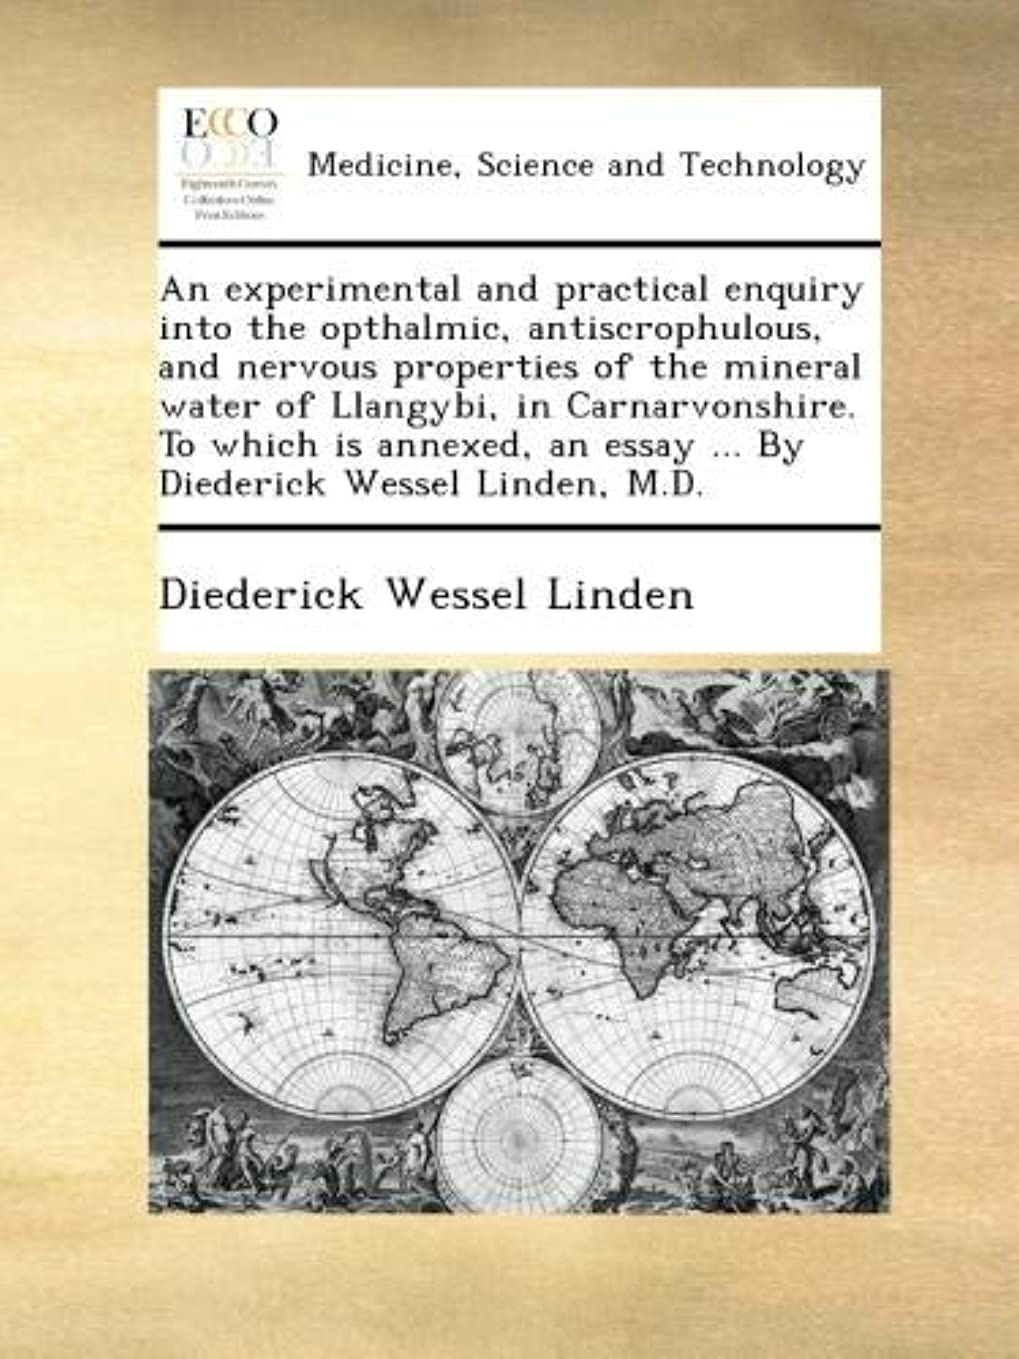 安いです優しさ証言An experimental and practical enquiry into the opthalmic, antiscrophulous, and nervous properties of the mineral water of Llangybi, in Carnarvonshire. To which is annexed, an essay ... By Diederick Wessel Linden, M.D.